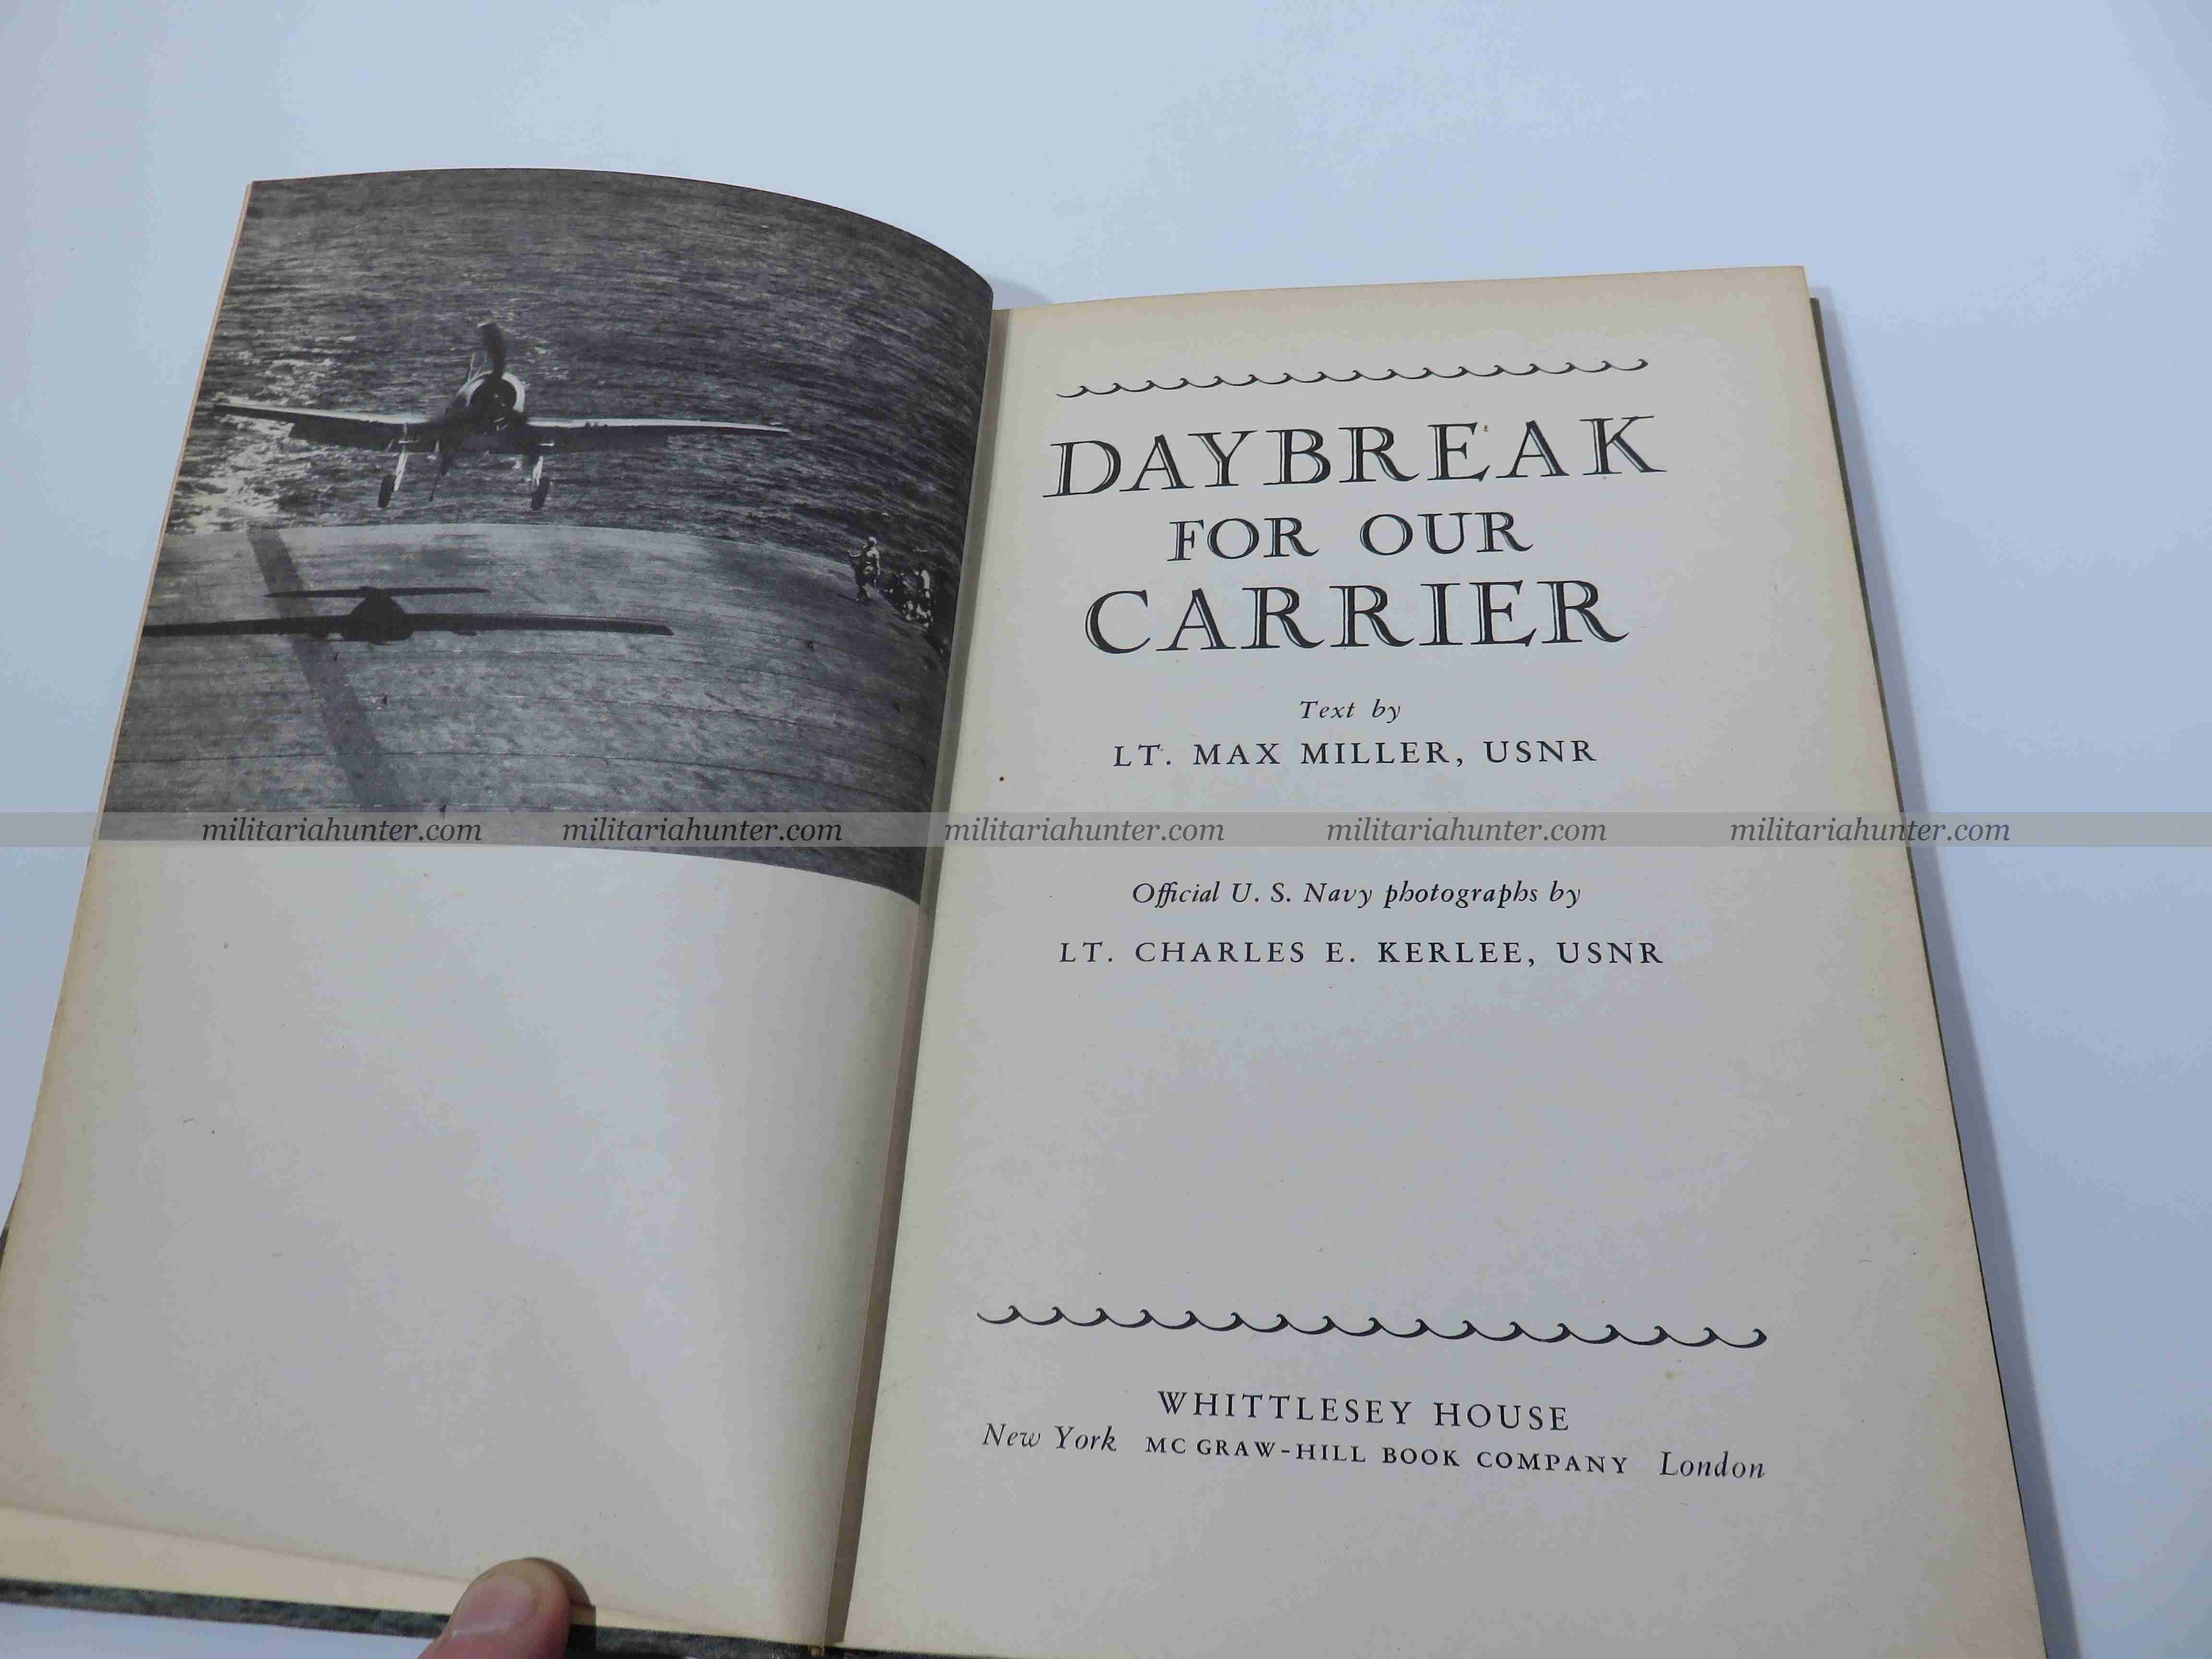 militaria : ww2 Livre Porte Avion US - Daybreak for our carrier by Lt Max Miller